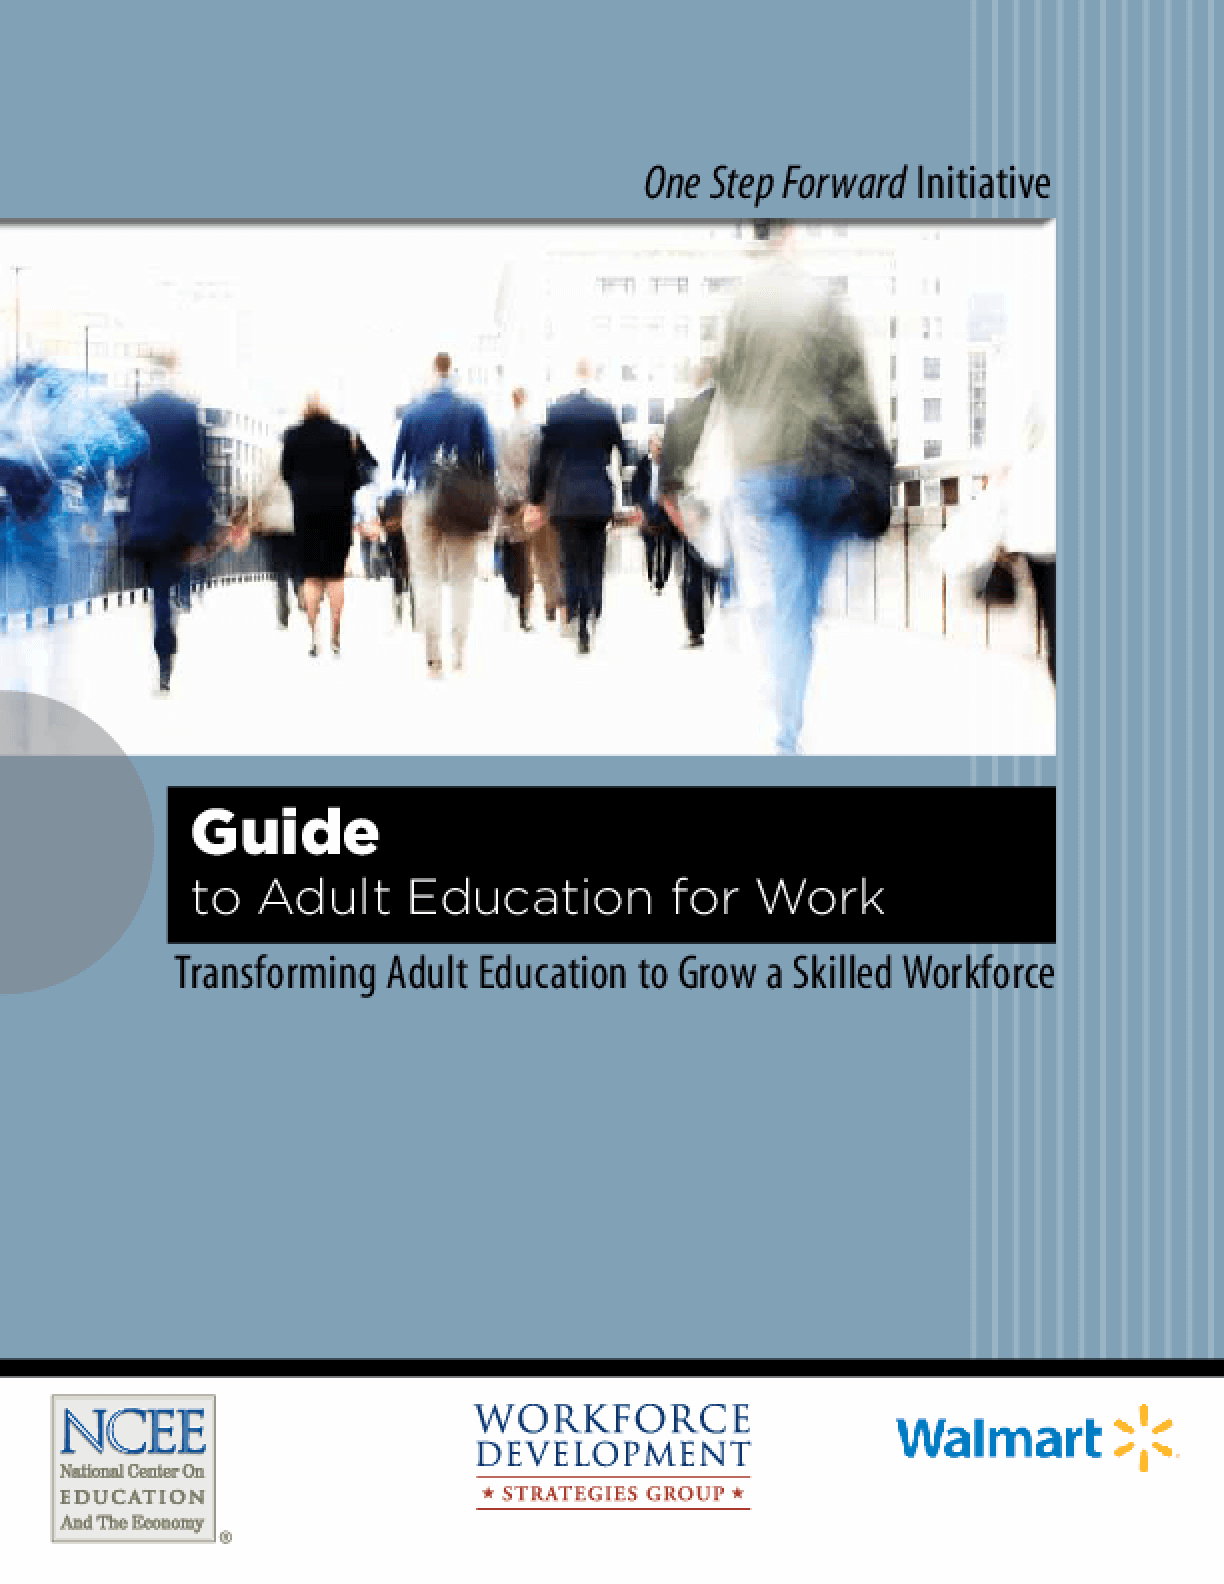 Guide to Adult Education for Work: Transforming Adult Education to Grow a Skilled Workforce